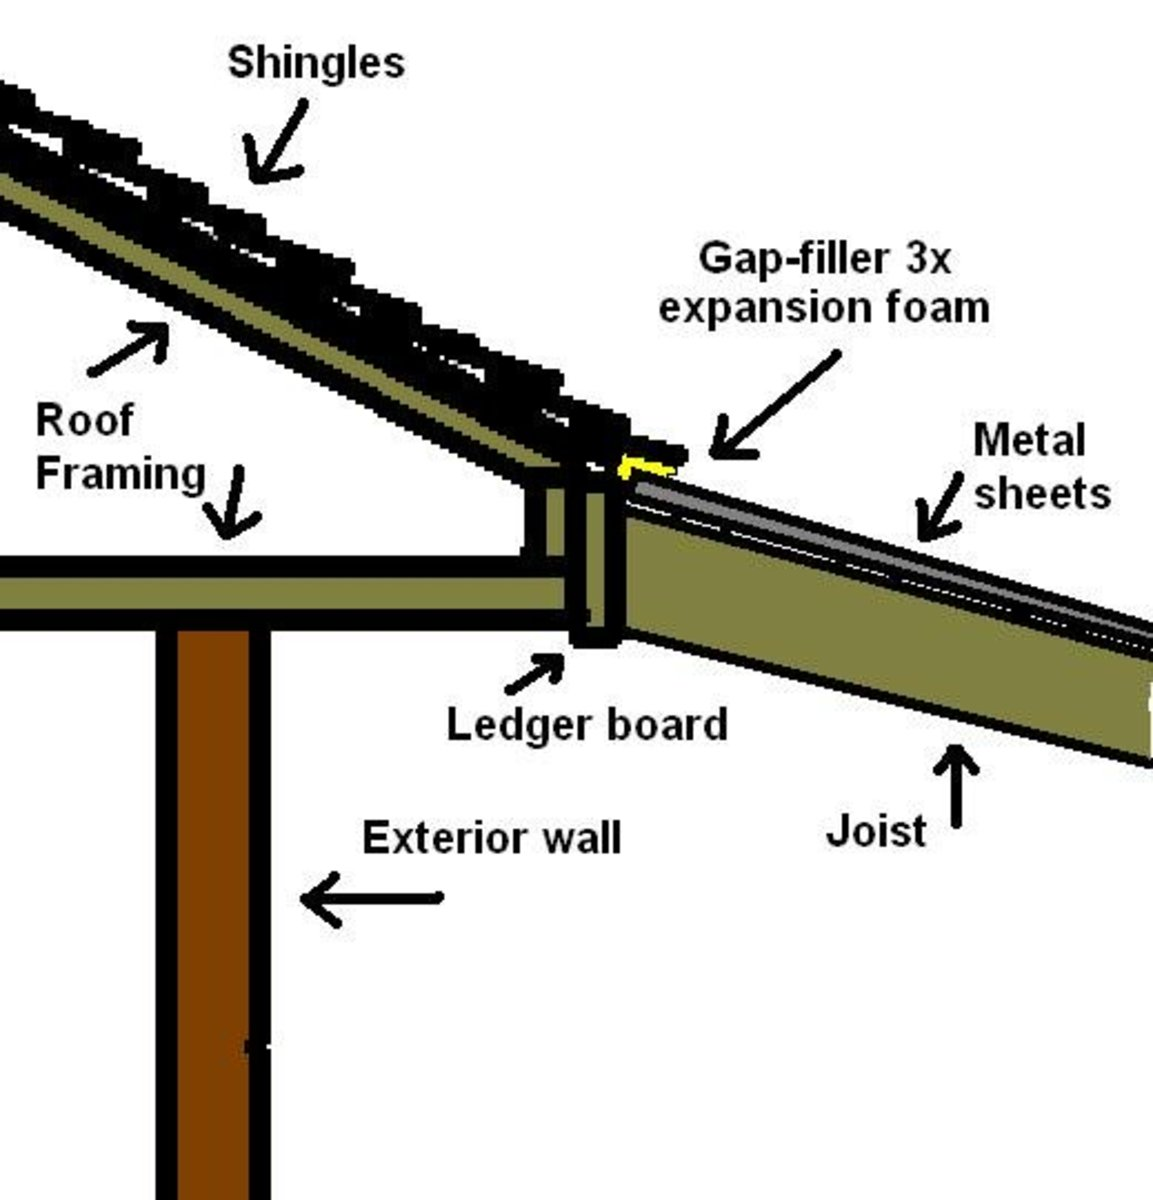 How to Build a Patio Cover With a Corrugated Metal Roof | Dengarden